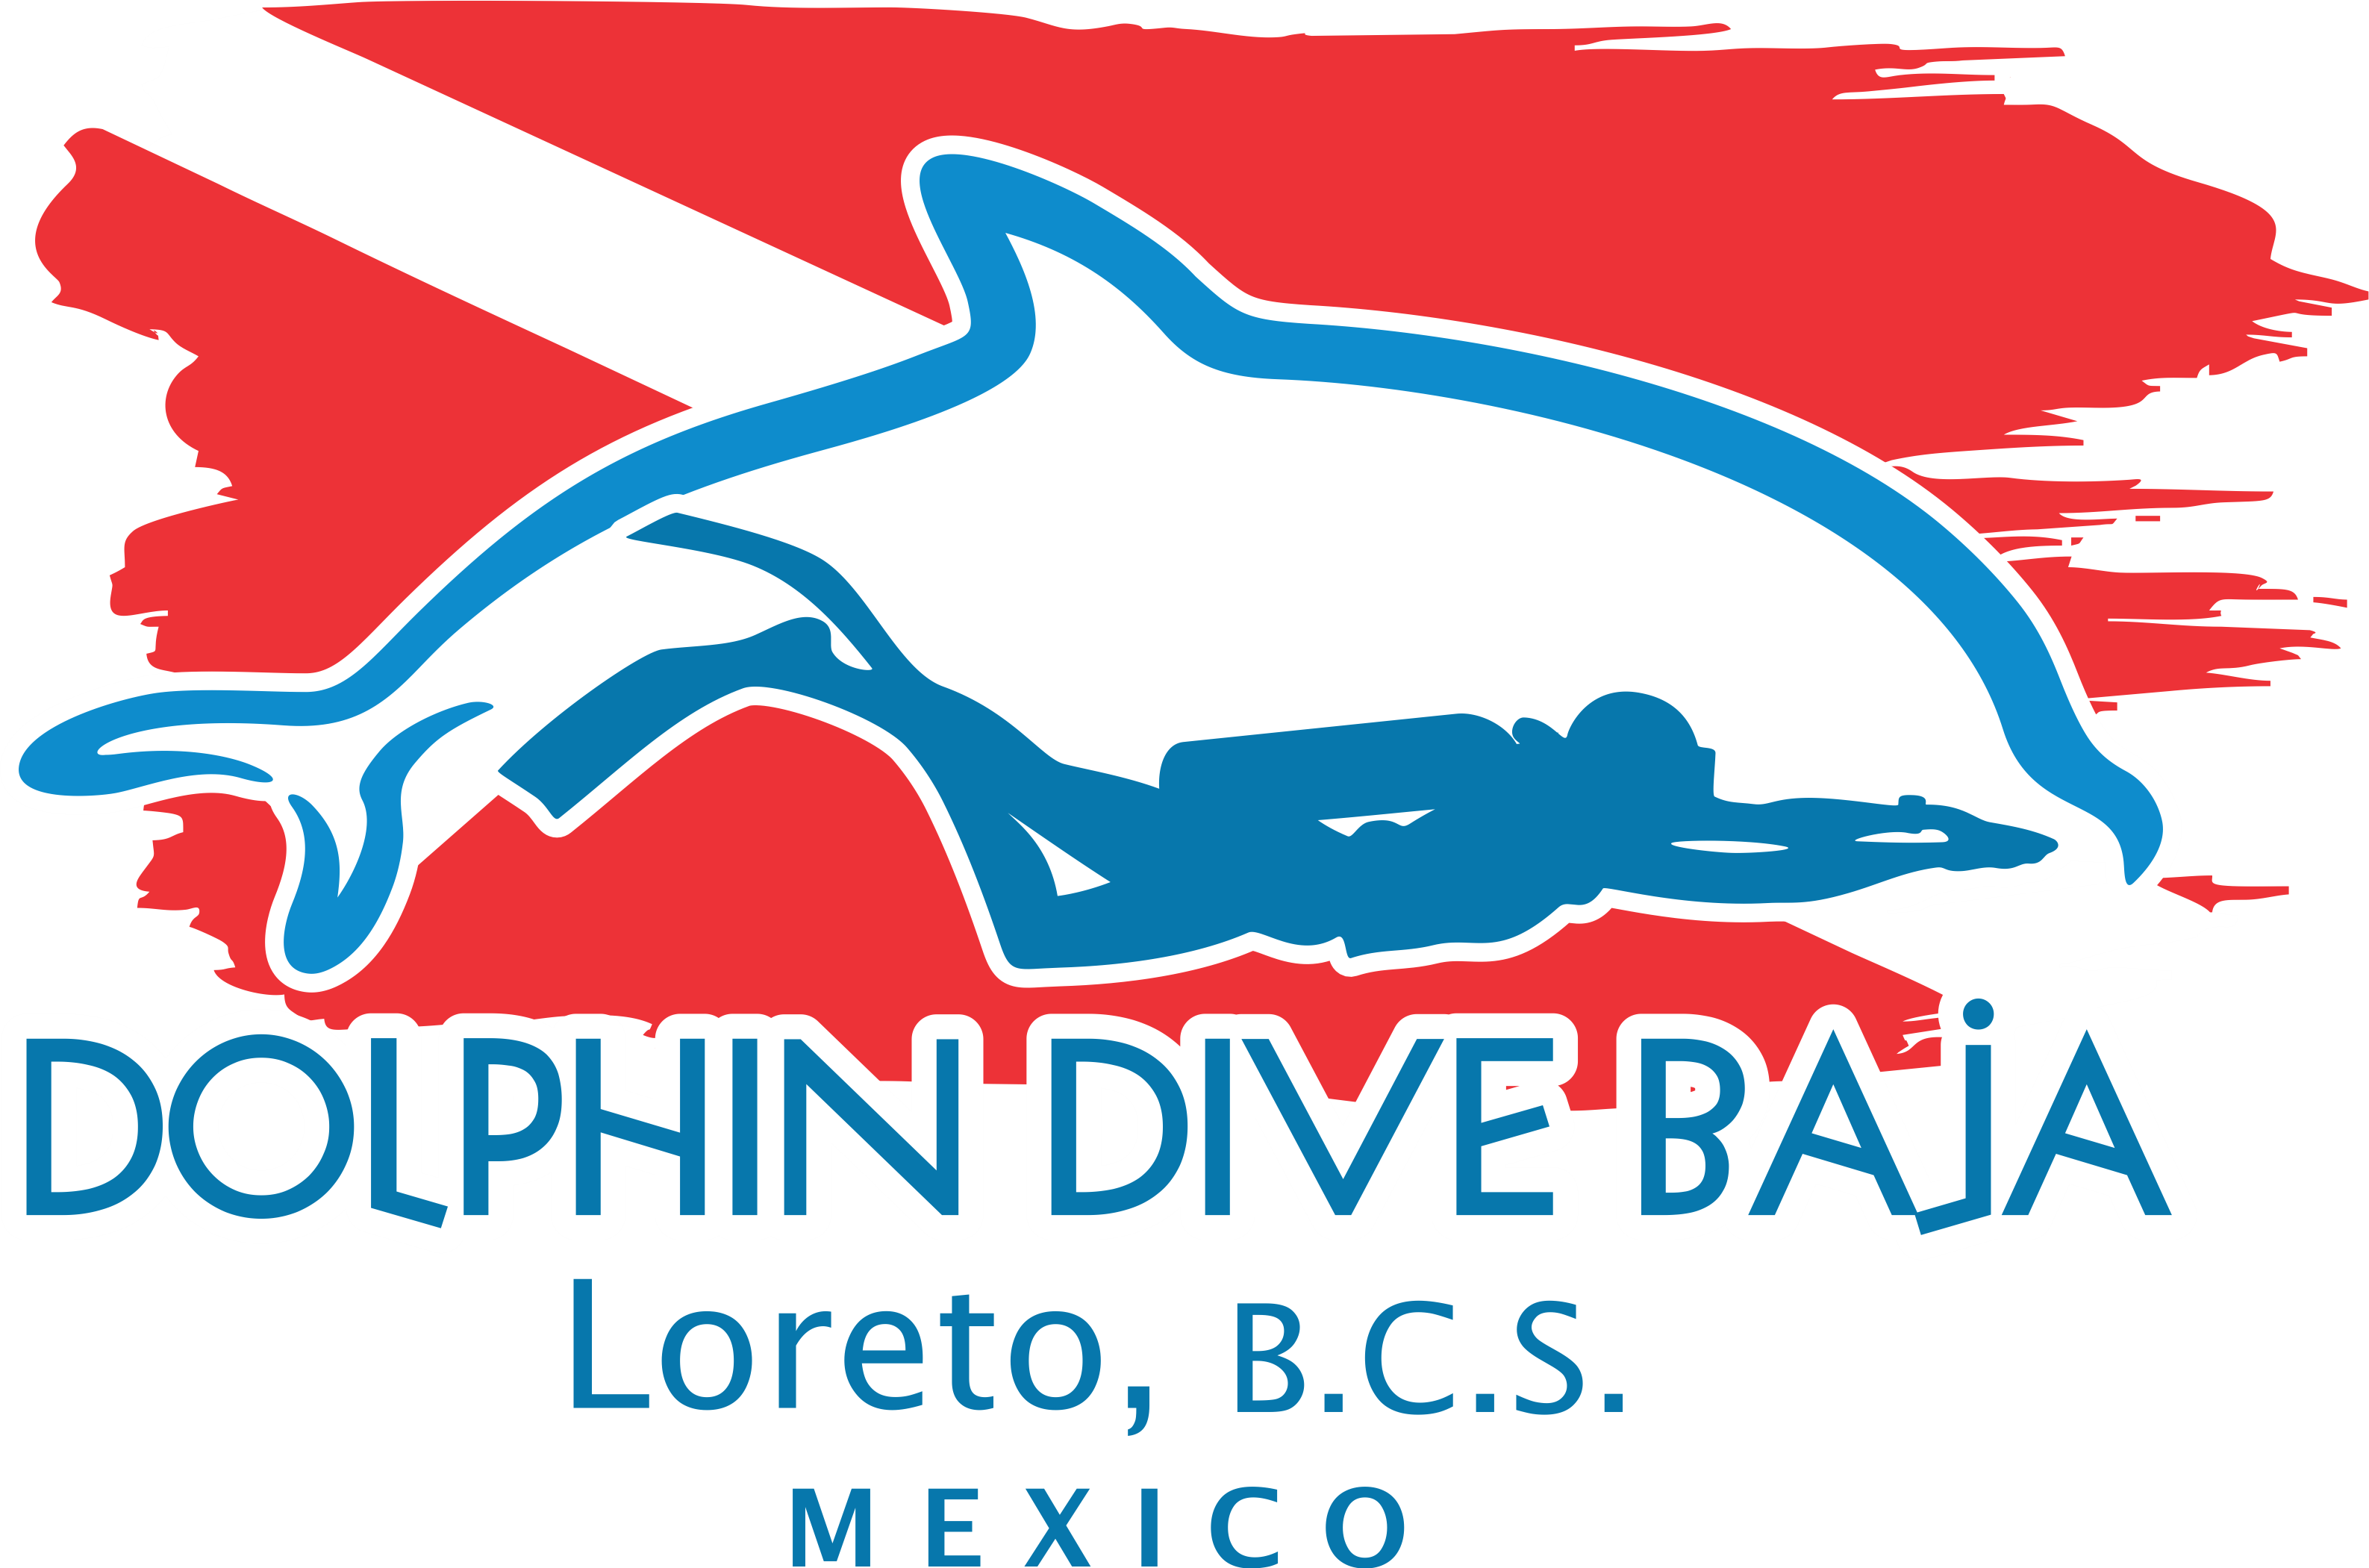 Dolphins clipart dolphin diving. Loreto mexico home dive